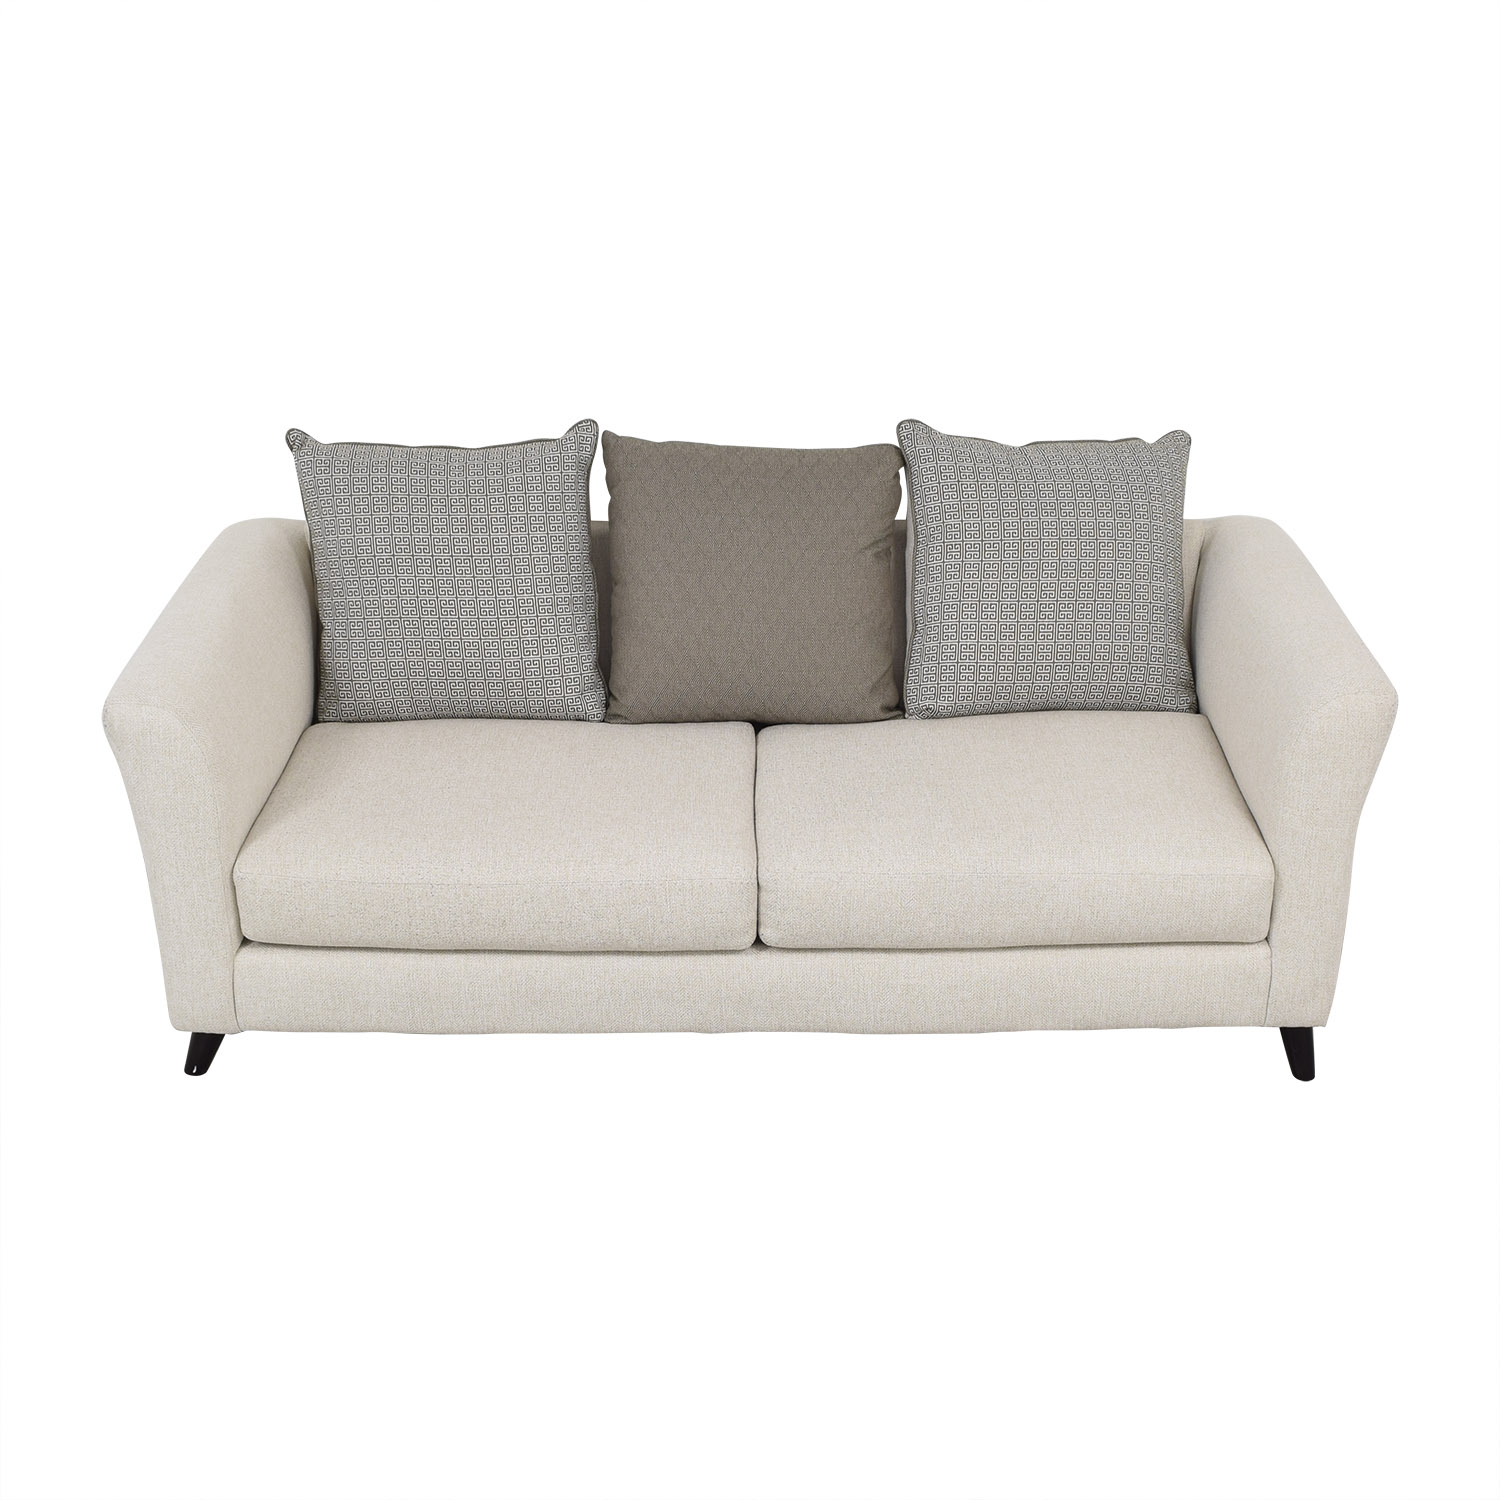 Raymour & Flanigan Raymour & Flanigan Sofa with Pillows dimensions